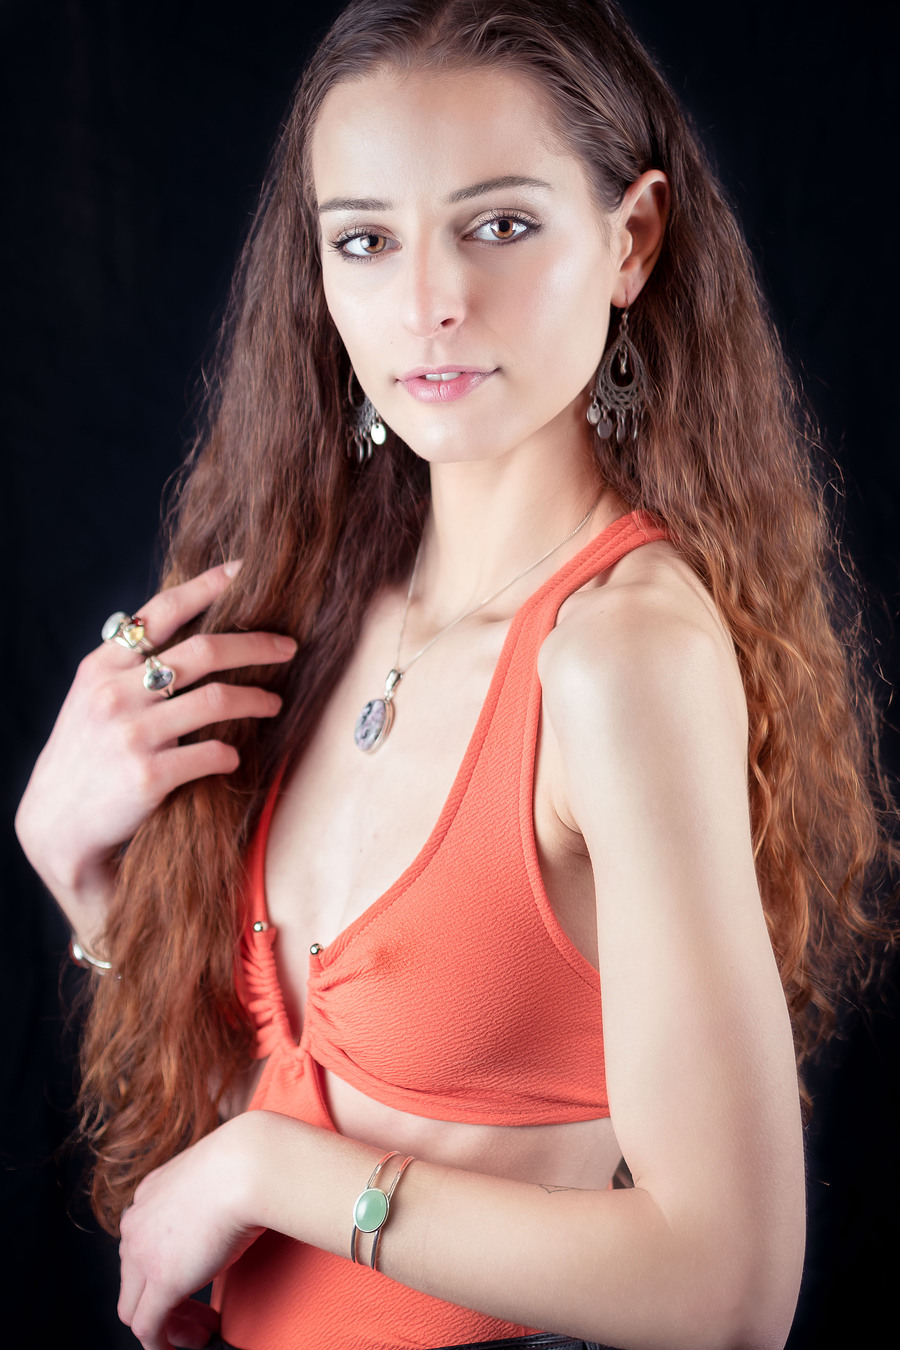 That orange top / Photography by FGImage, Model Cara Jane / Uploaded 7th January 2018 @ 11:35 AM